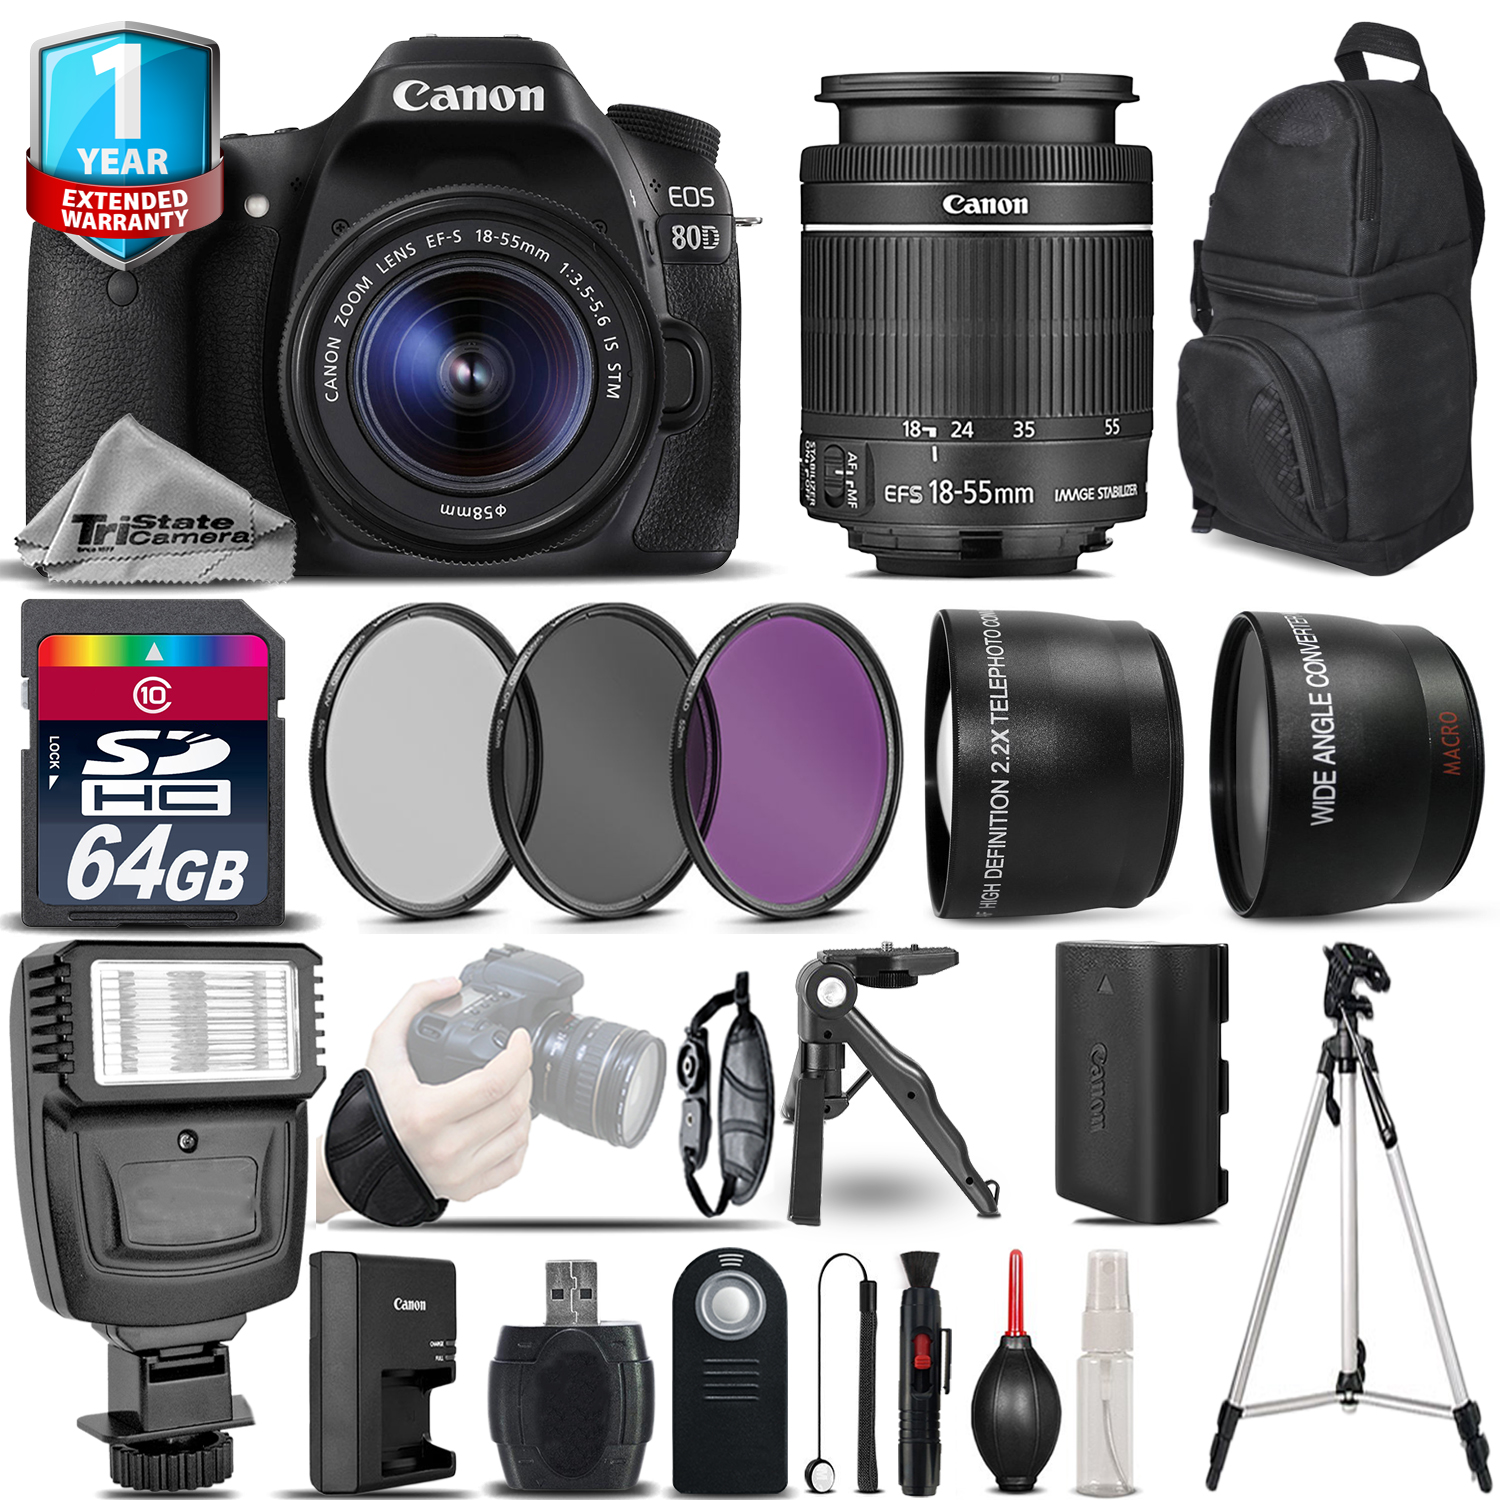 EOS 80D DSLR Camera + 18-55mm IS + 1yr Warranty + Filters - Saving Bundle *FREE SHIPPING*